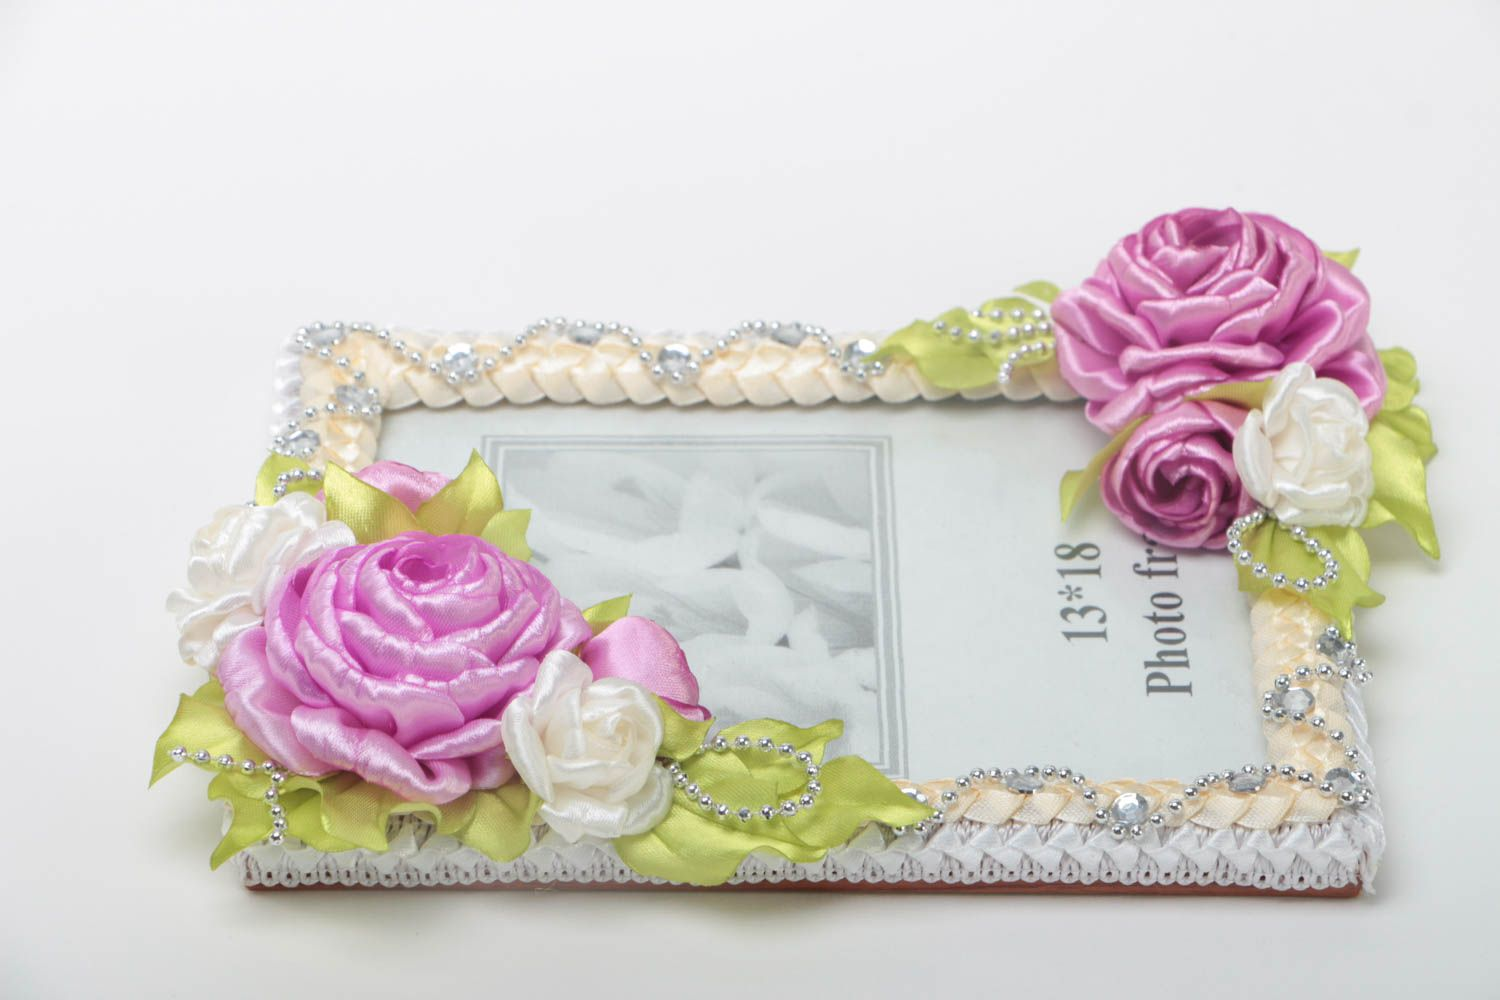 Handmade wooden photo frame with textile flowers interior decorating gift ideas photo 2